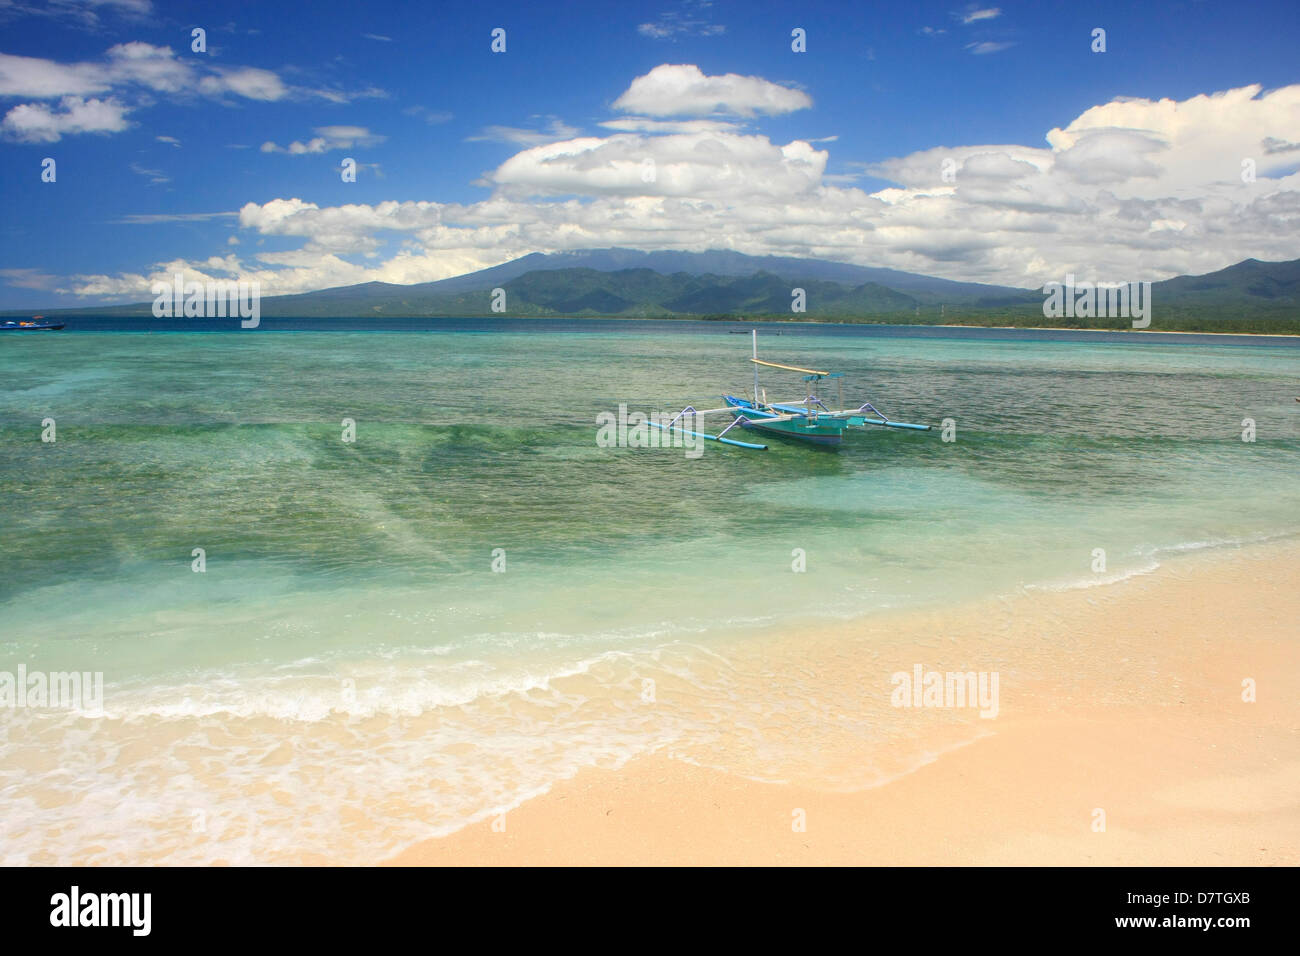 Outrigger boat at beach, Gili Air island, Indonesia - Stock Image